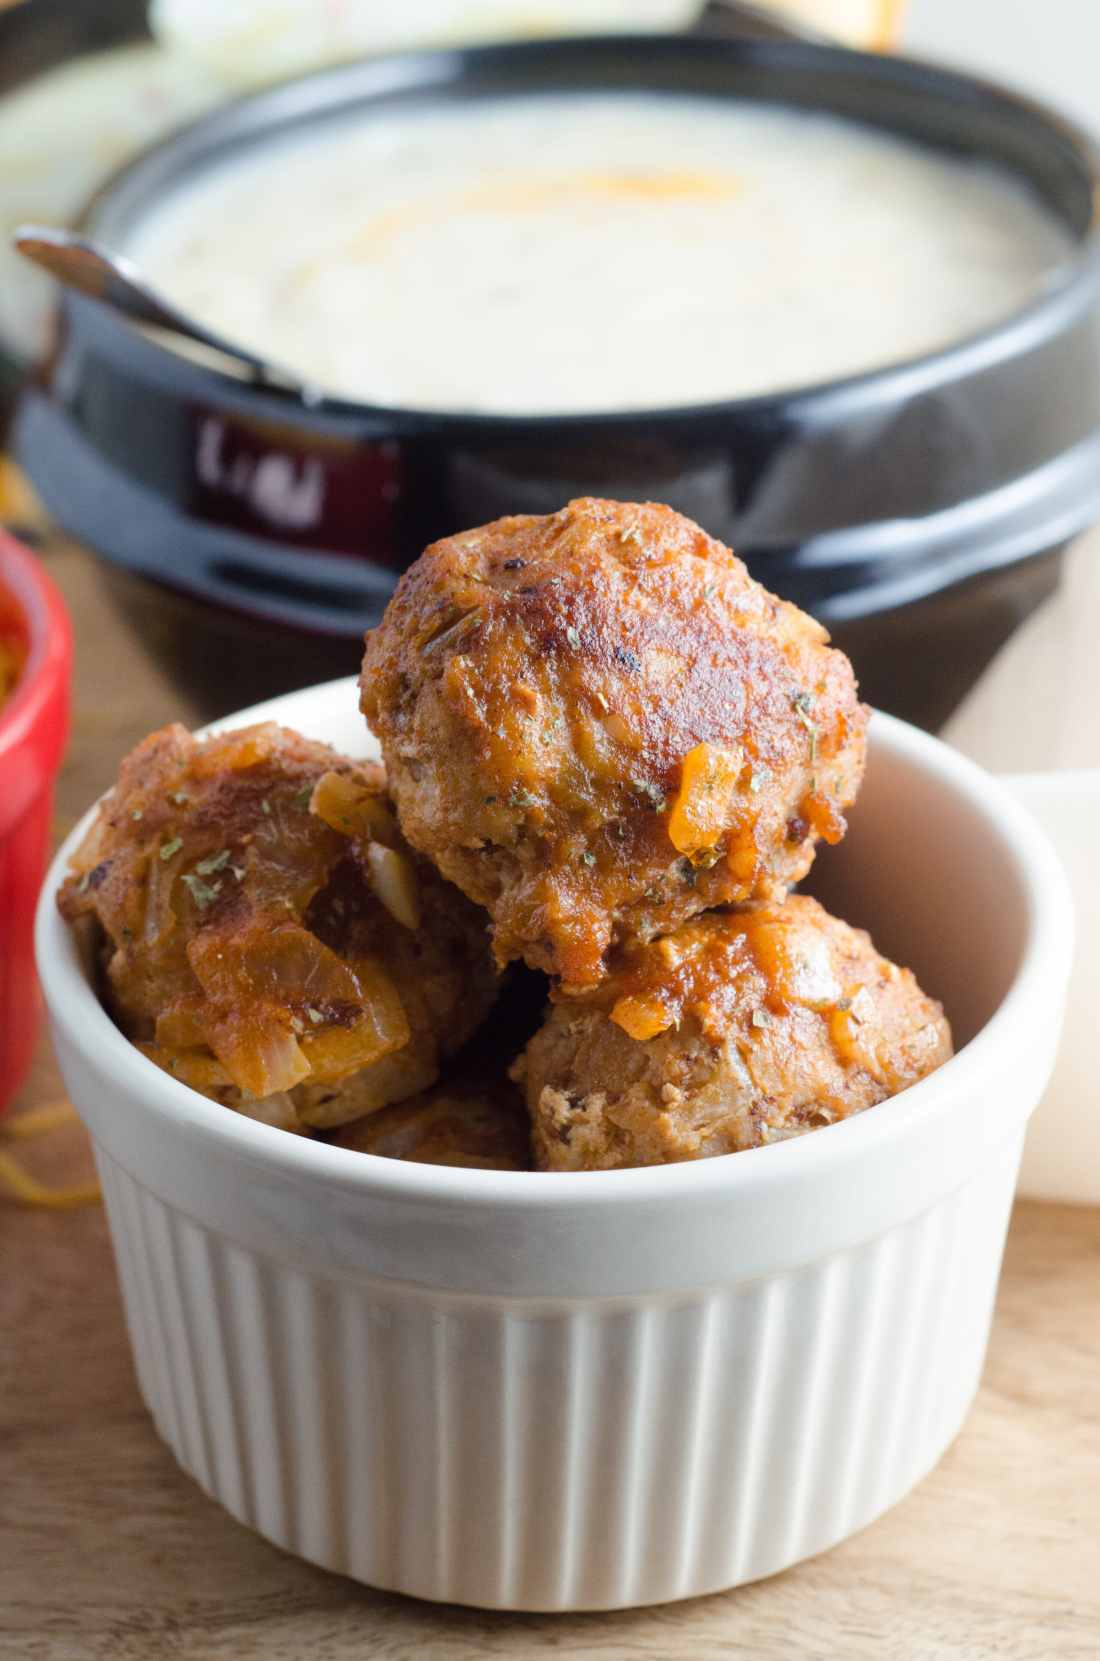 This sweet and sour turkey meatball is an easy 10 minute dinner option. Make ahead and freeze for future meals. Perfect for meal prepping and quick dinner options.